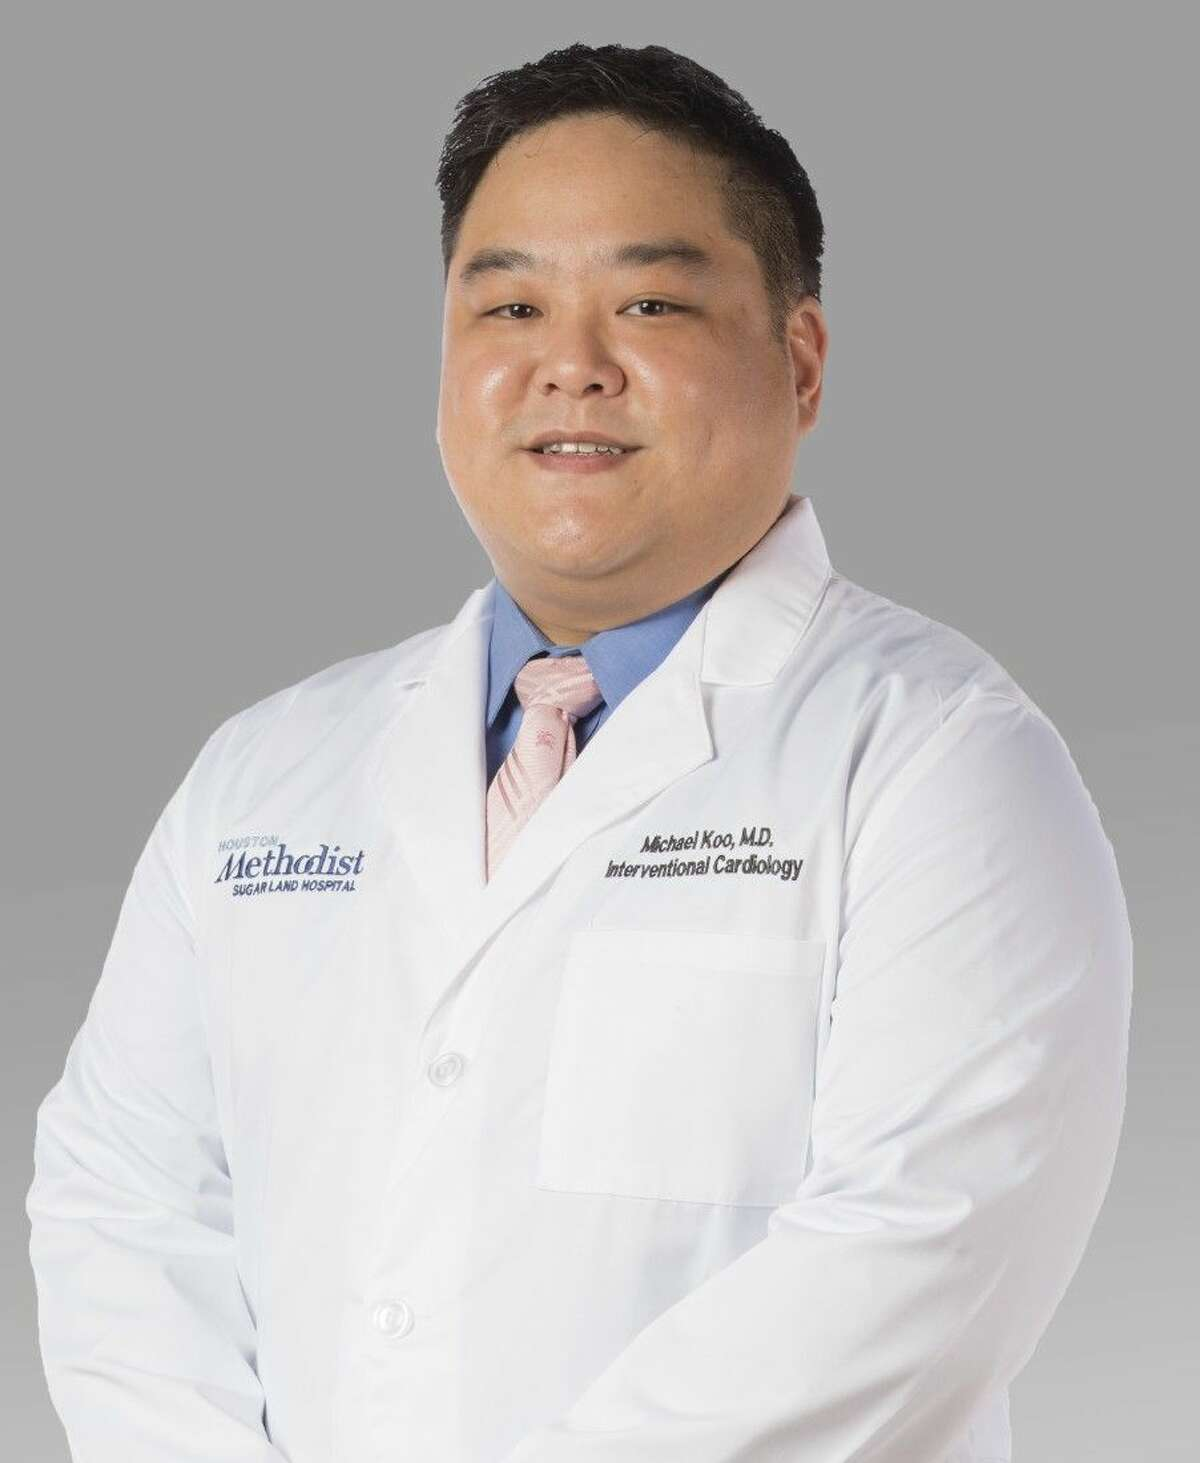 Pictured is board-certified cardiologist Michael H. Koo, M.D. He joins Houston Methodist Cardiology Associates.